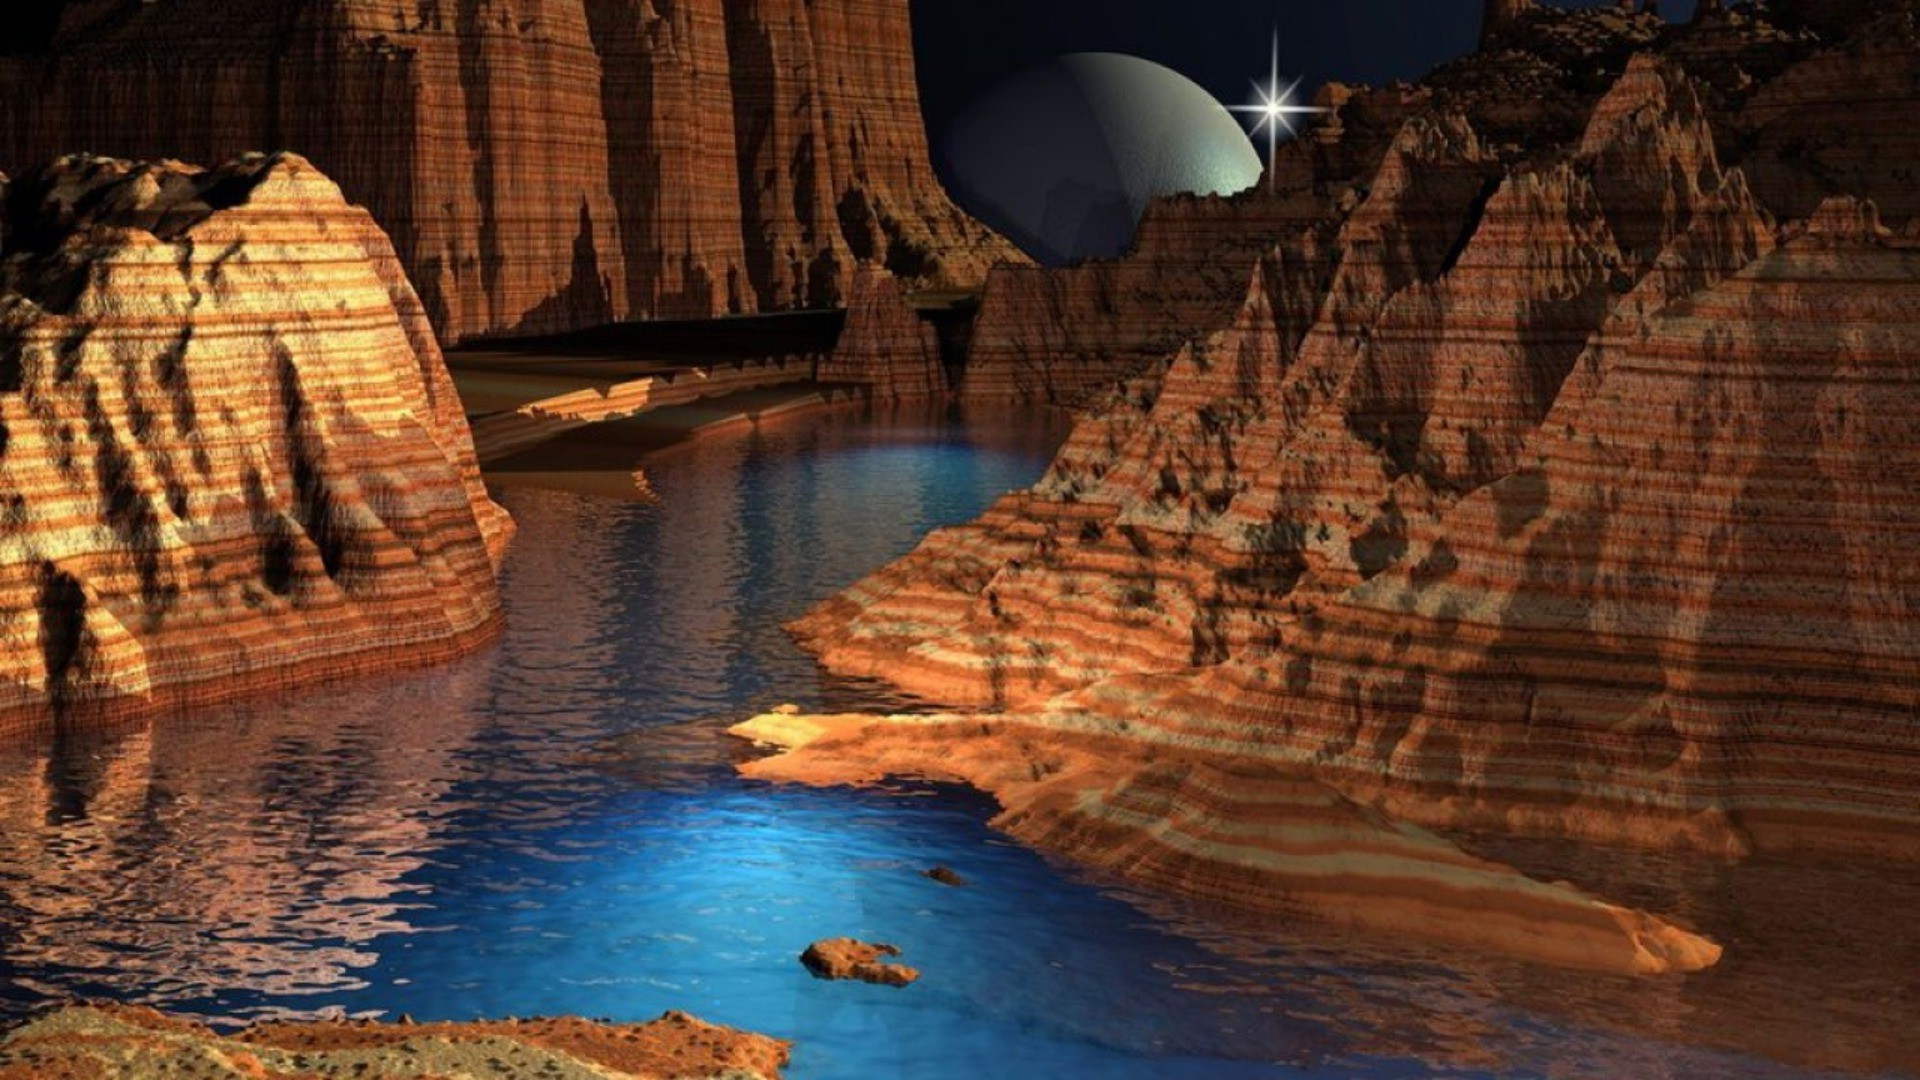 planets water travel landscape outdoors rock reflection scenic river nature recreation sunset